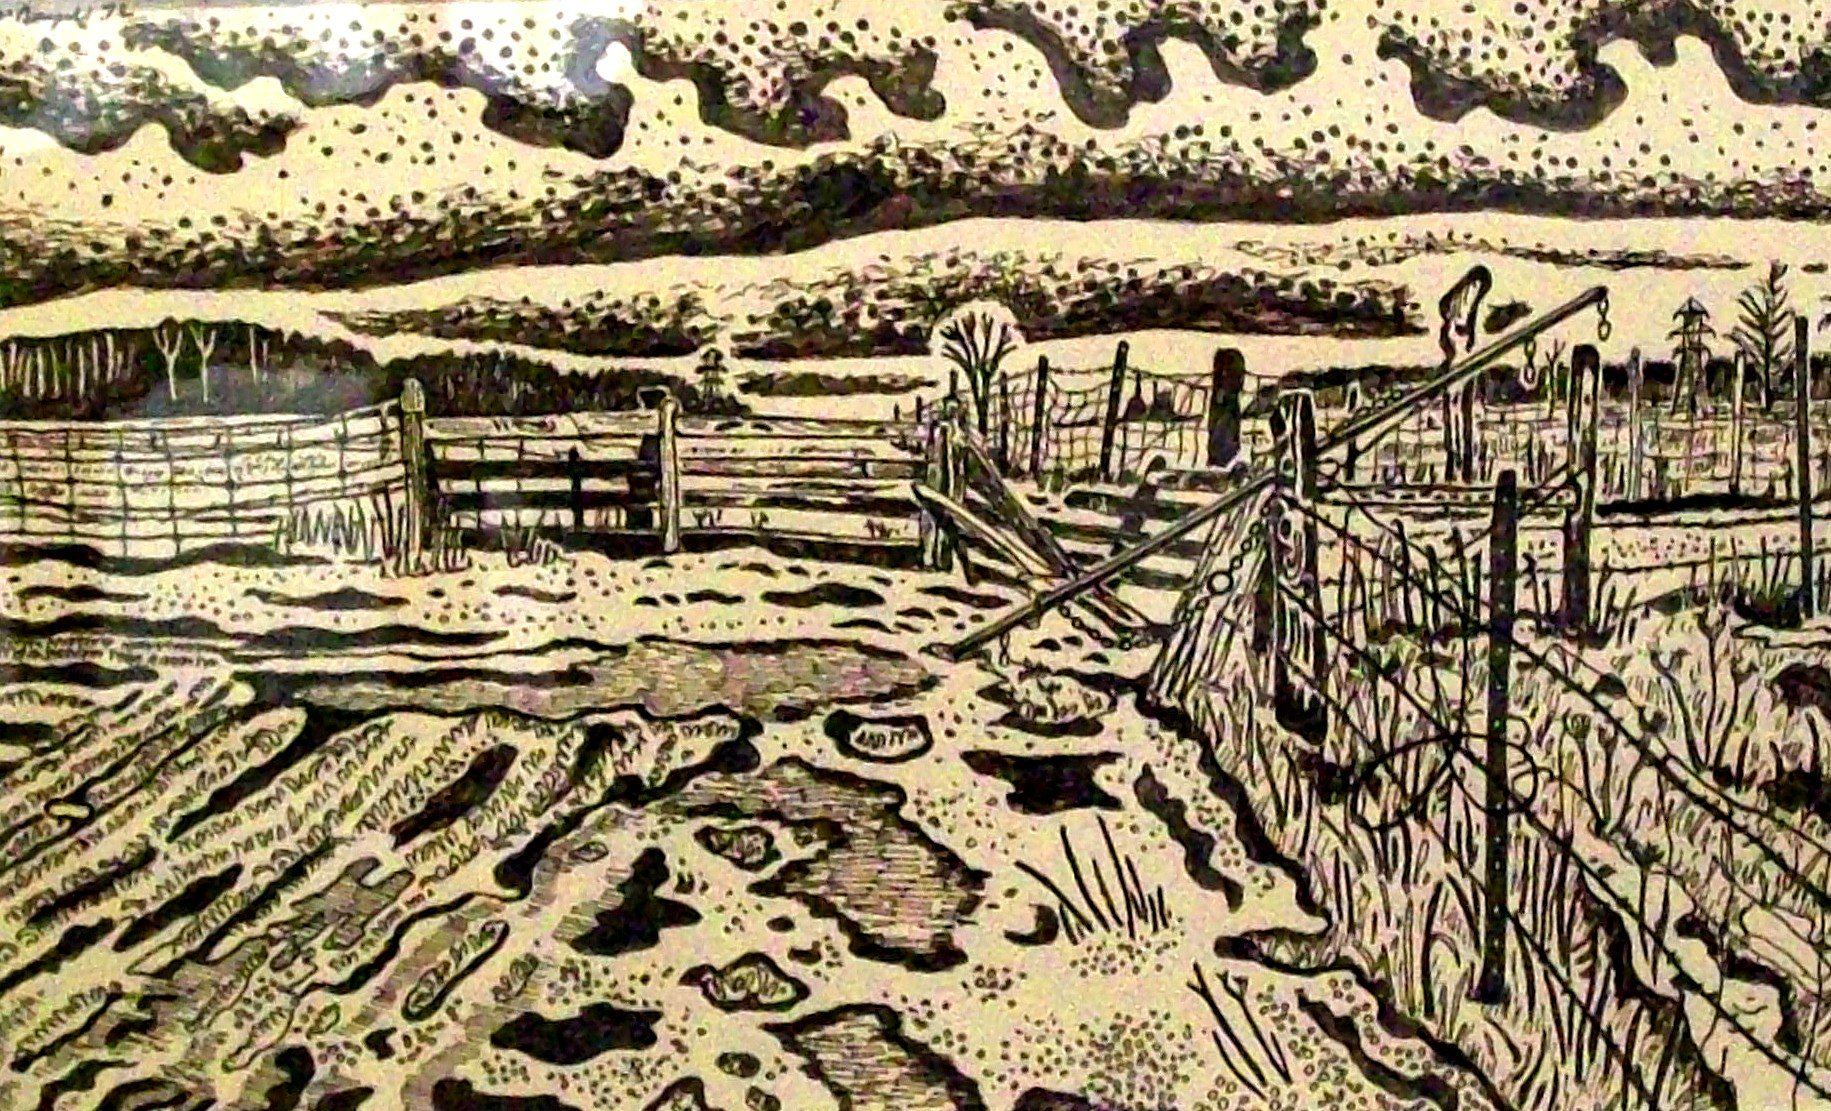 Fence Watson's Farm, ink on newsprint